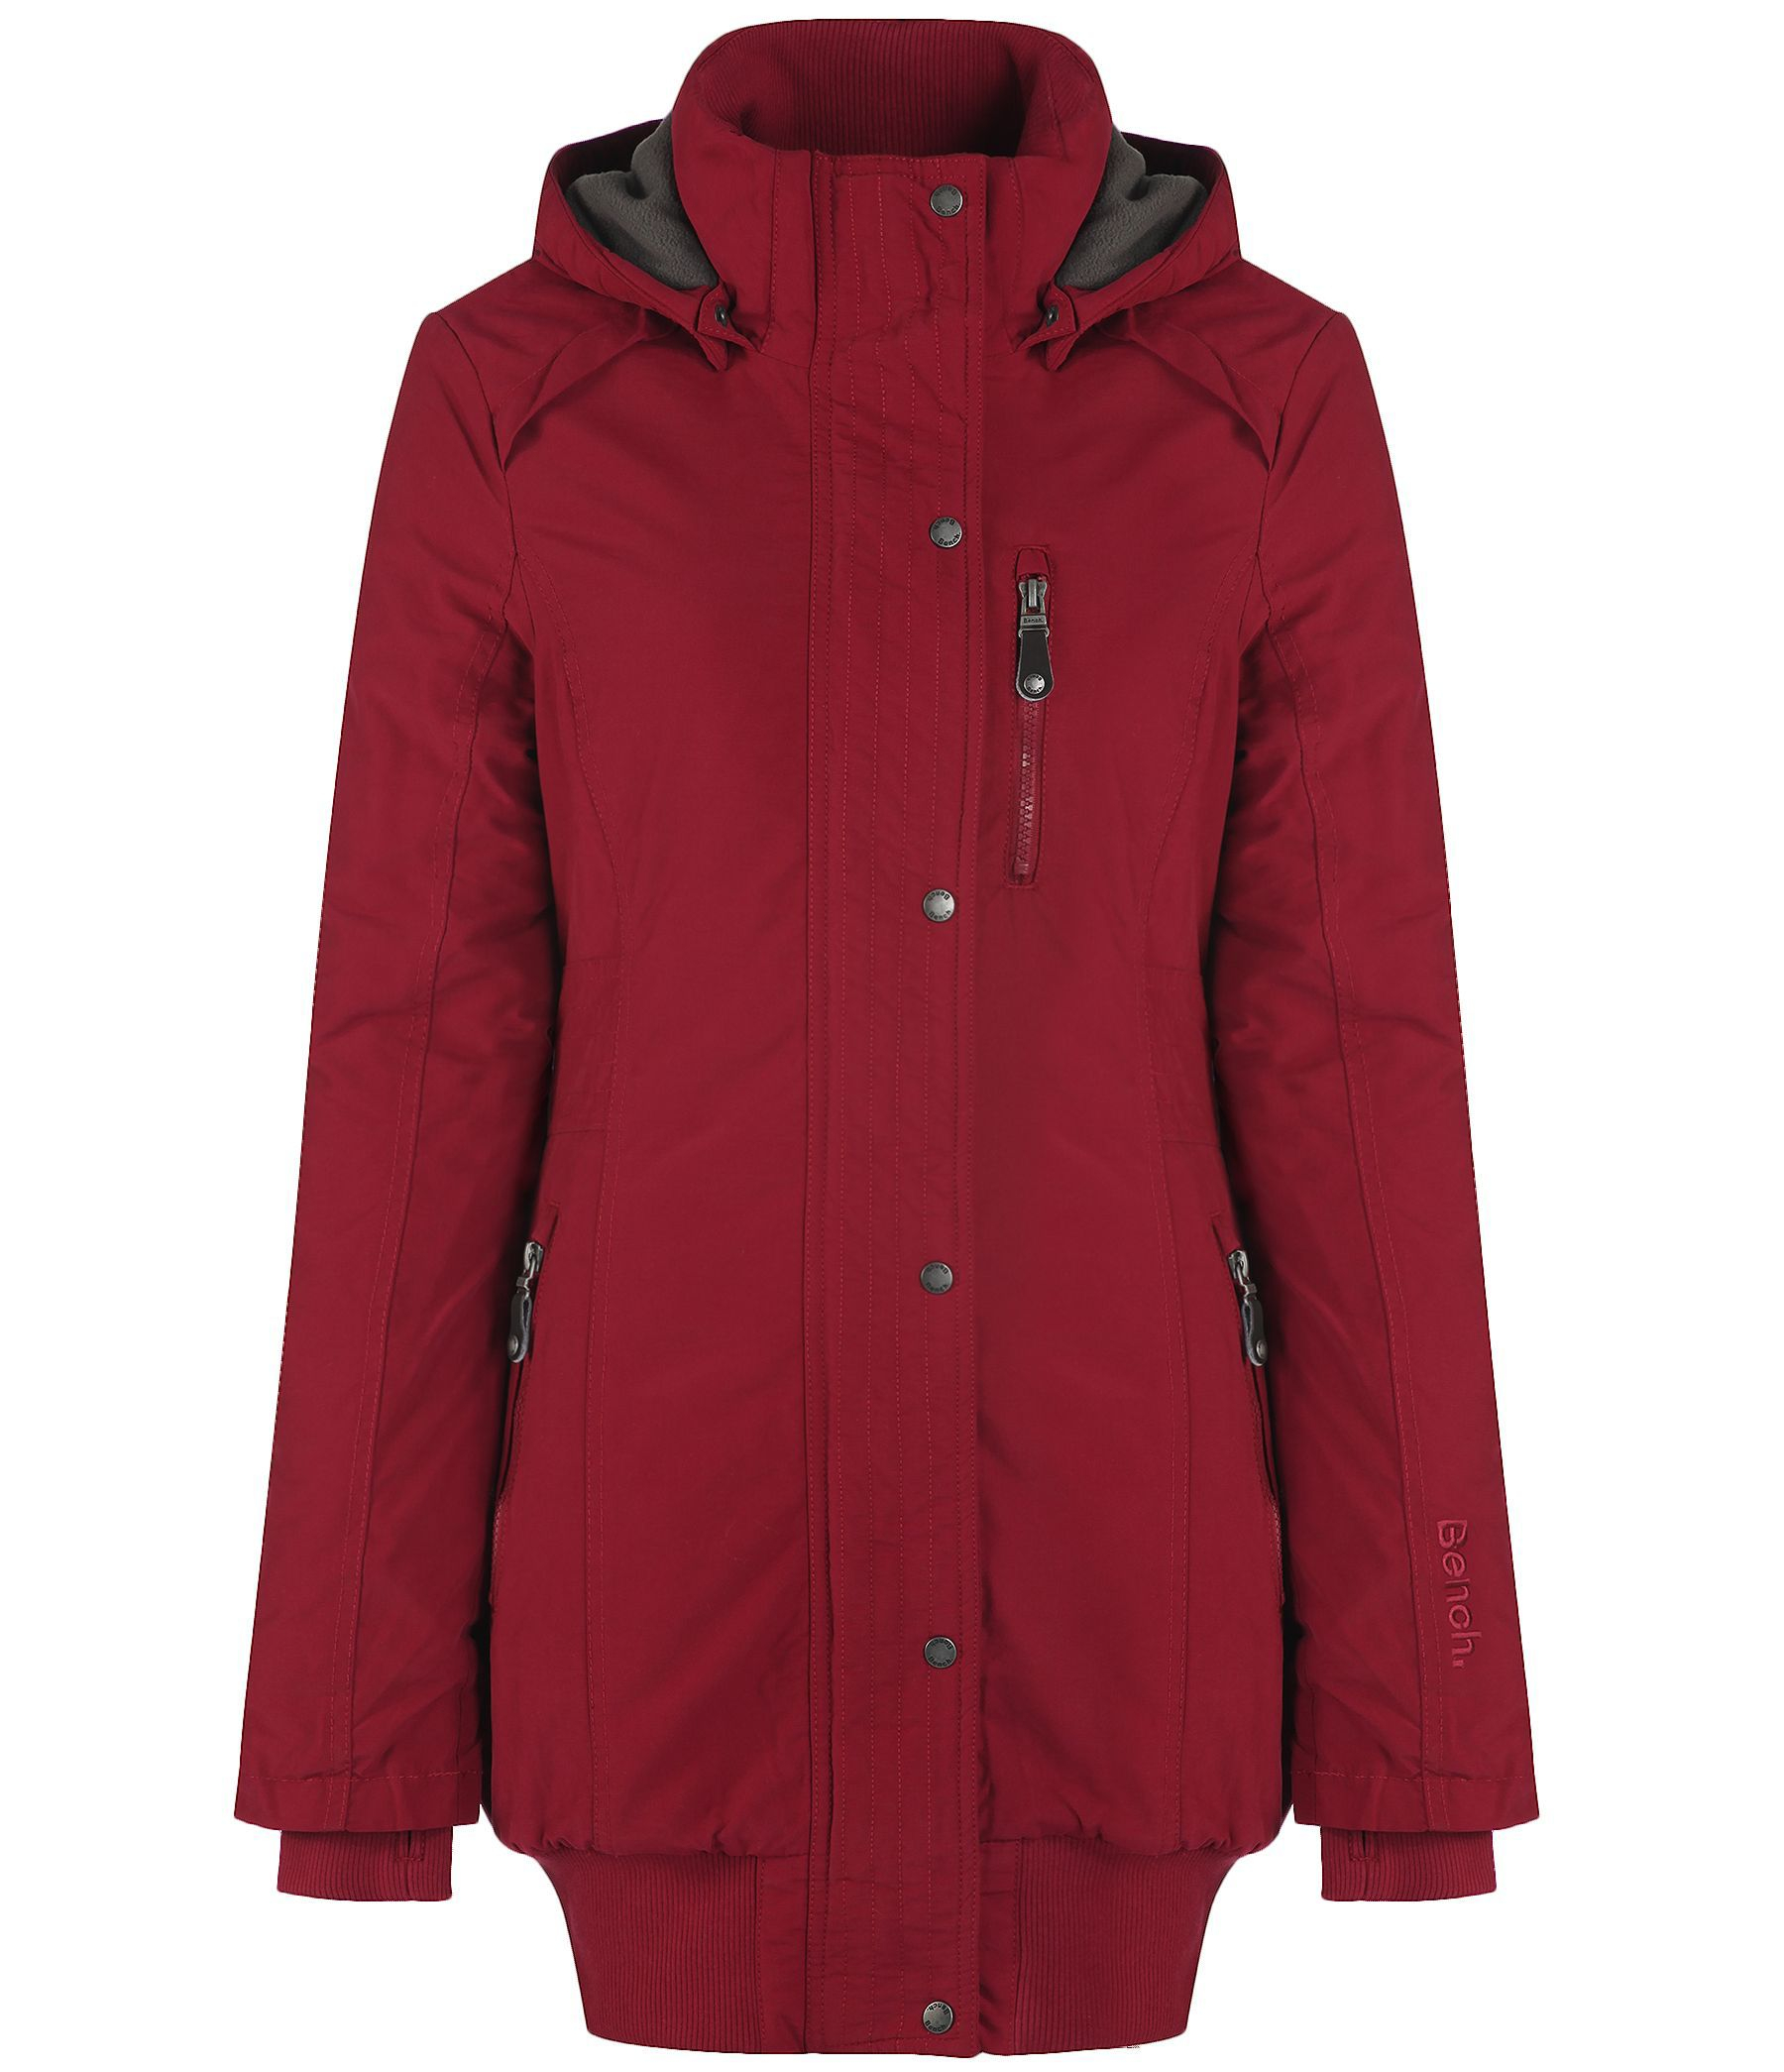 Bench razzer ii hooded parka jacket in red lyst Bench jacket